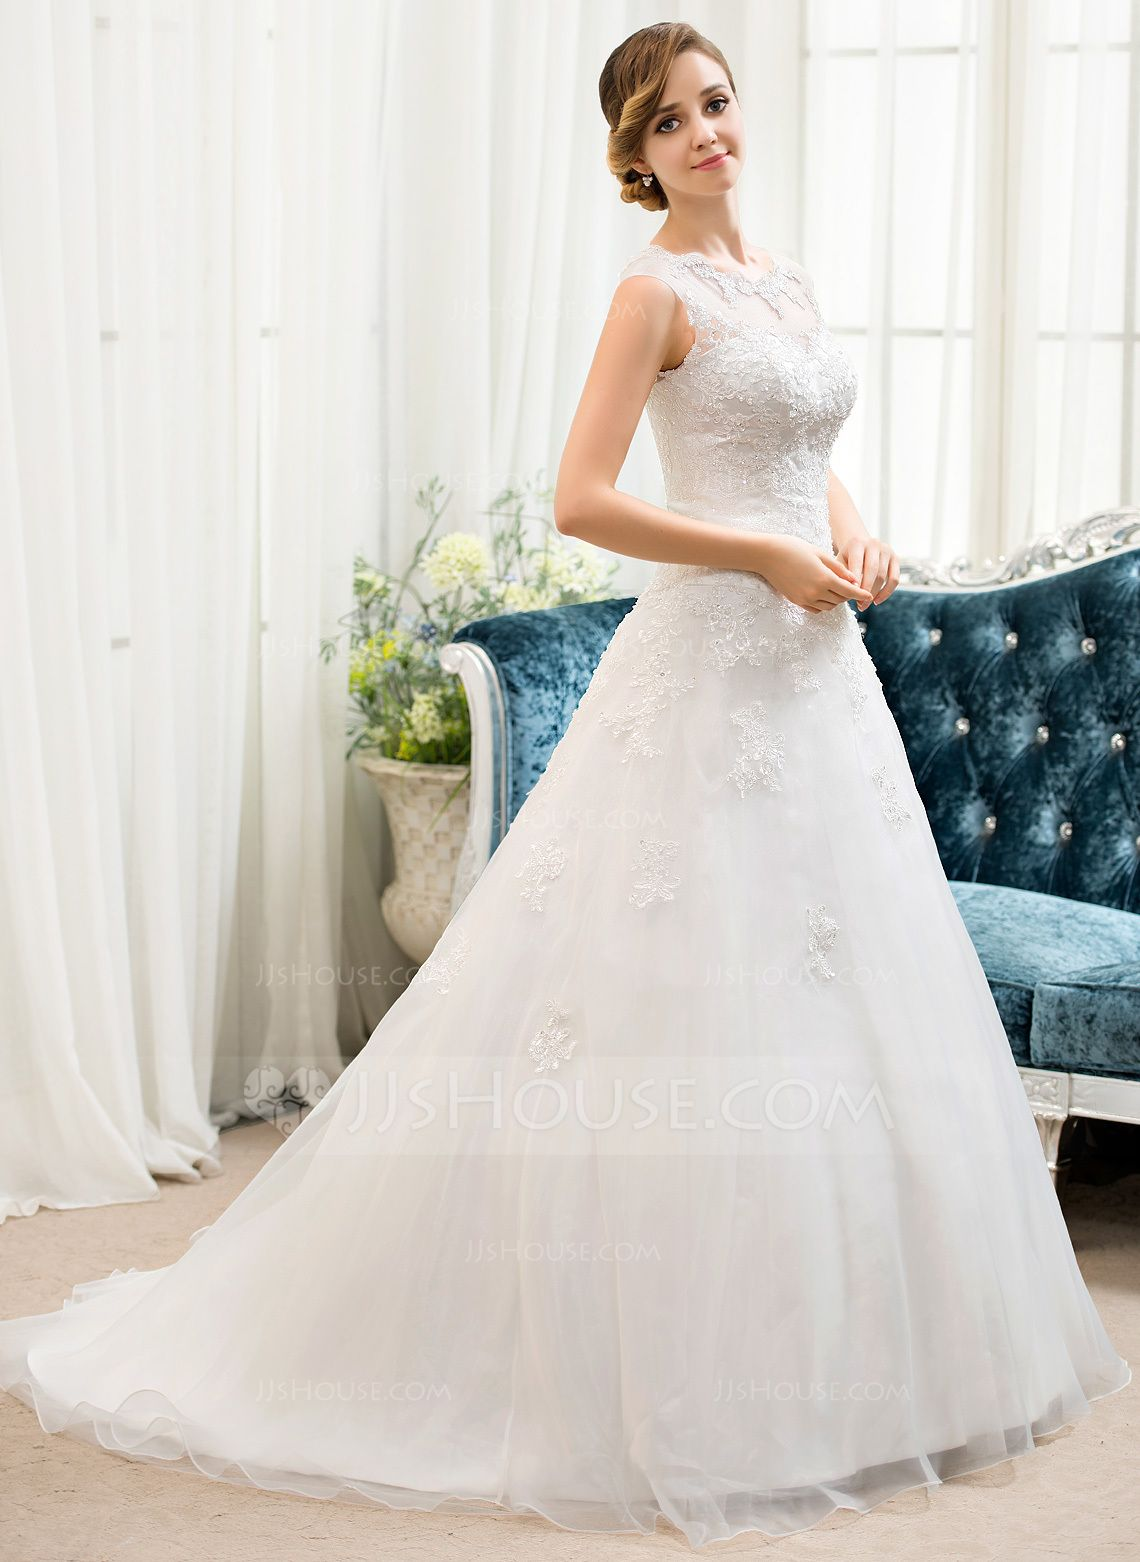 Ballgown scoop neck sweep train organza tulle wedding dress with